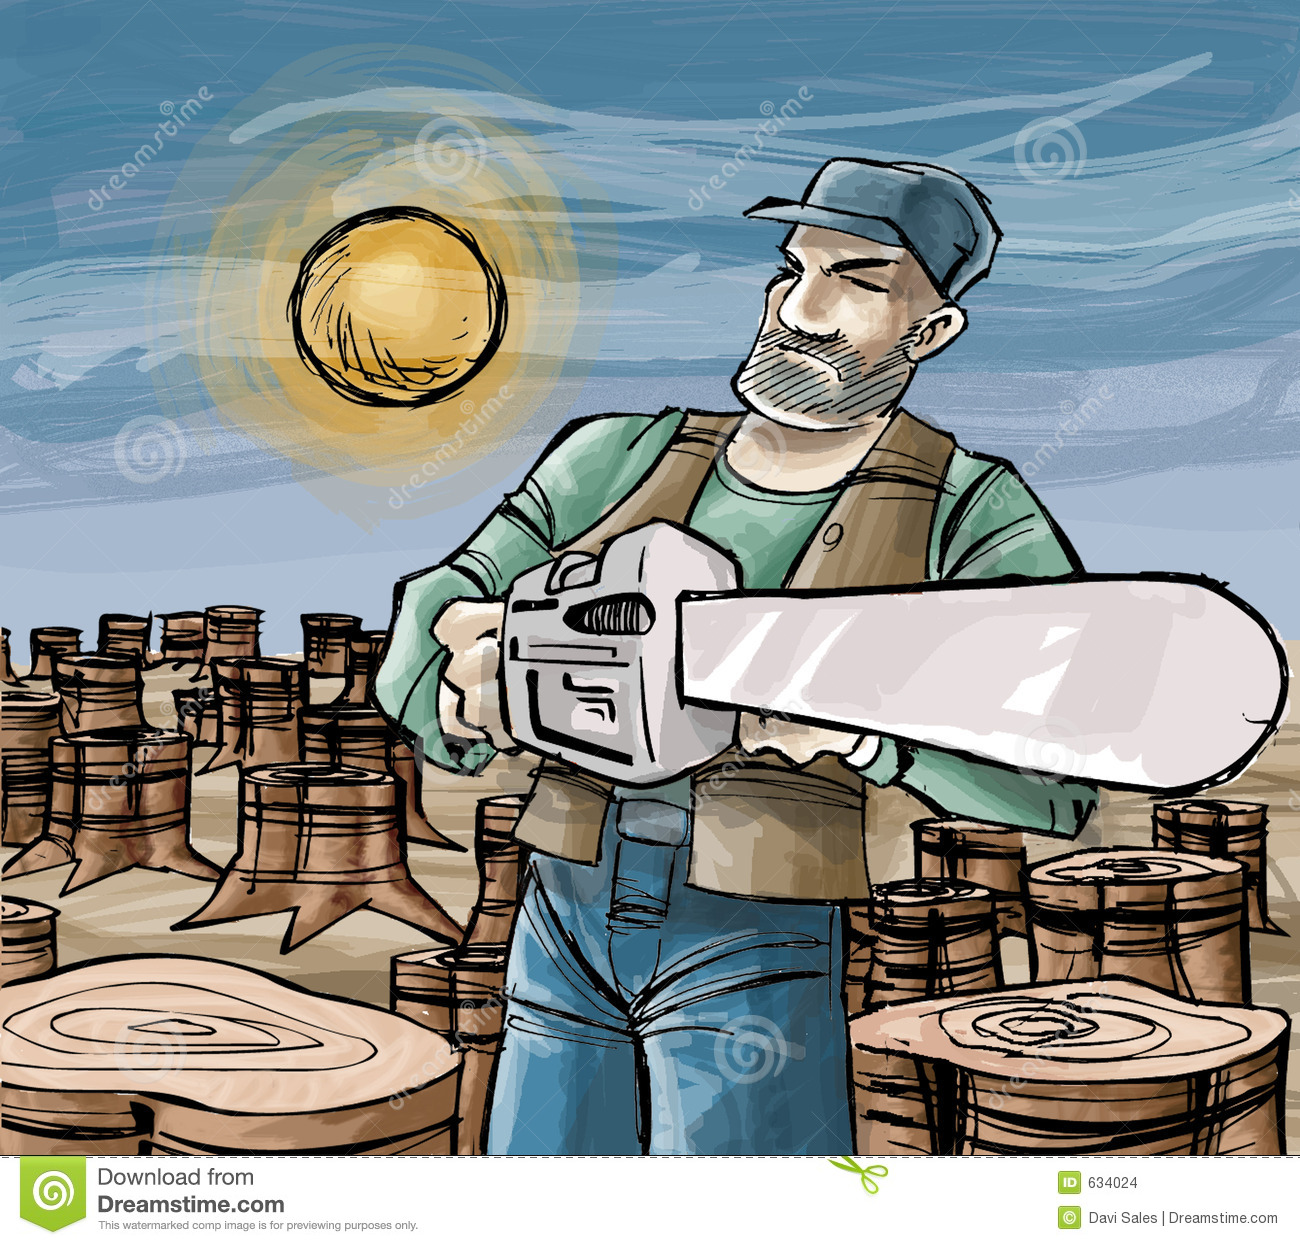 woodcutter cartoons  illustrations   vector stock images robot clipart png robot clipart png